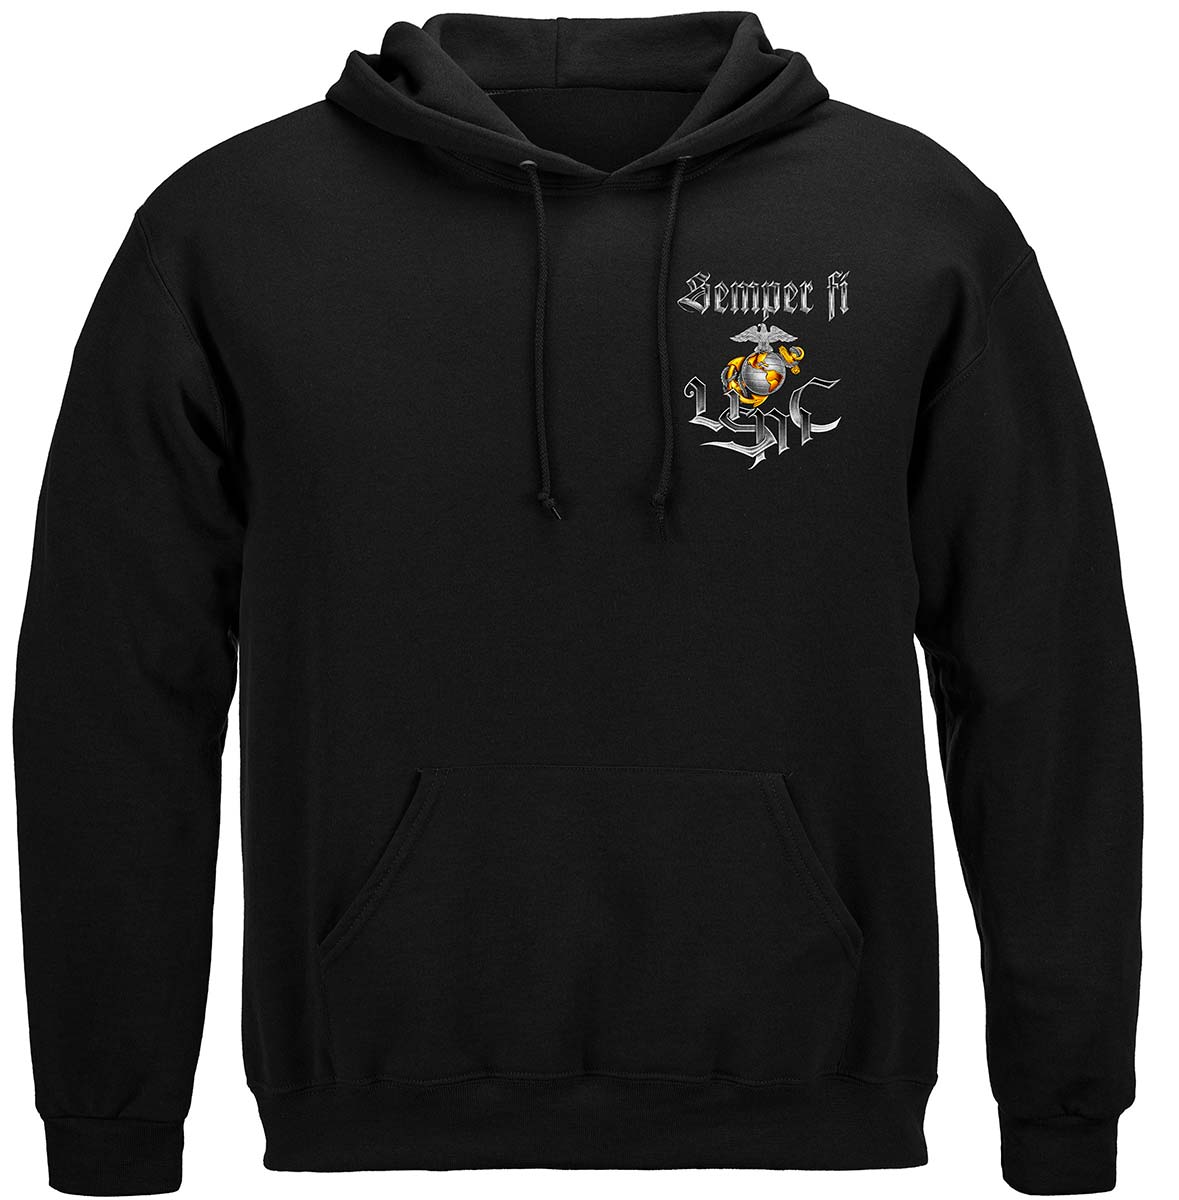 Semper Fi Chrome Dog Marine Corps Premium Hooded Sweat Shirt